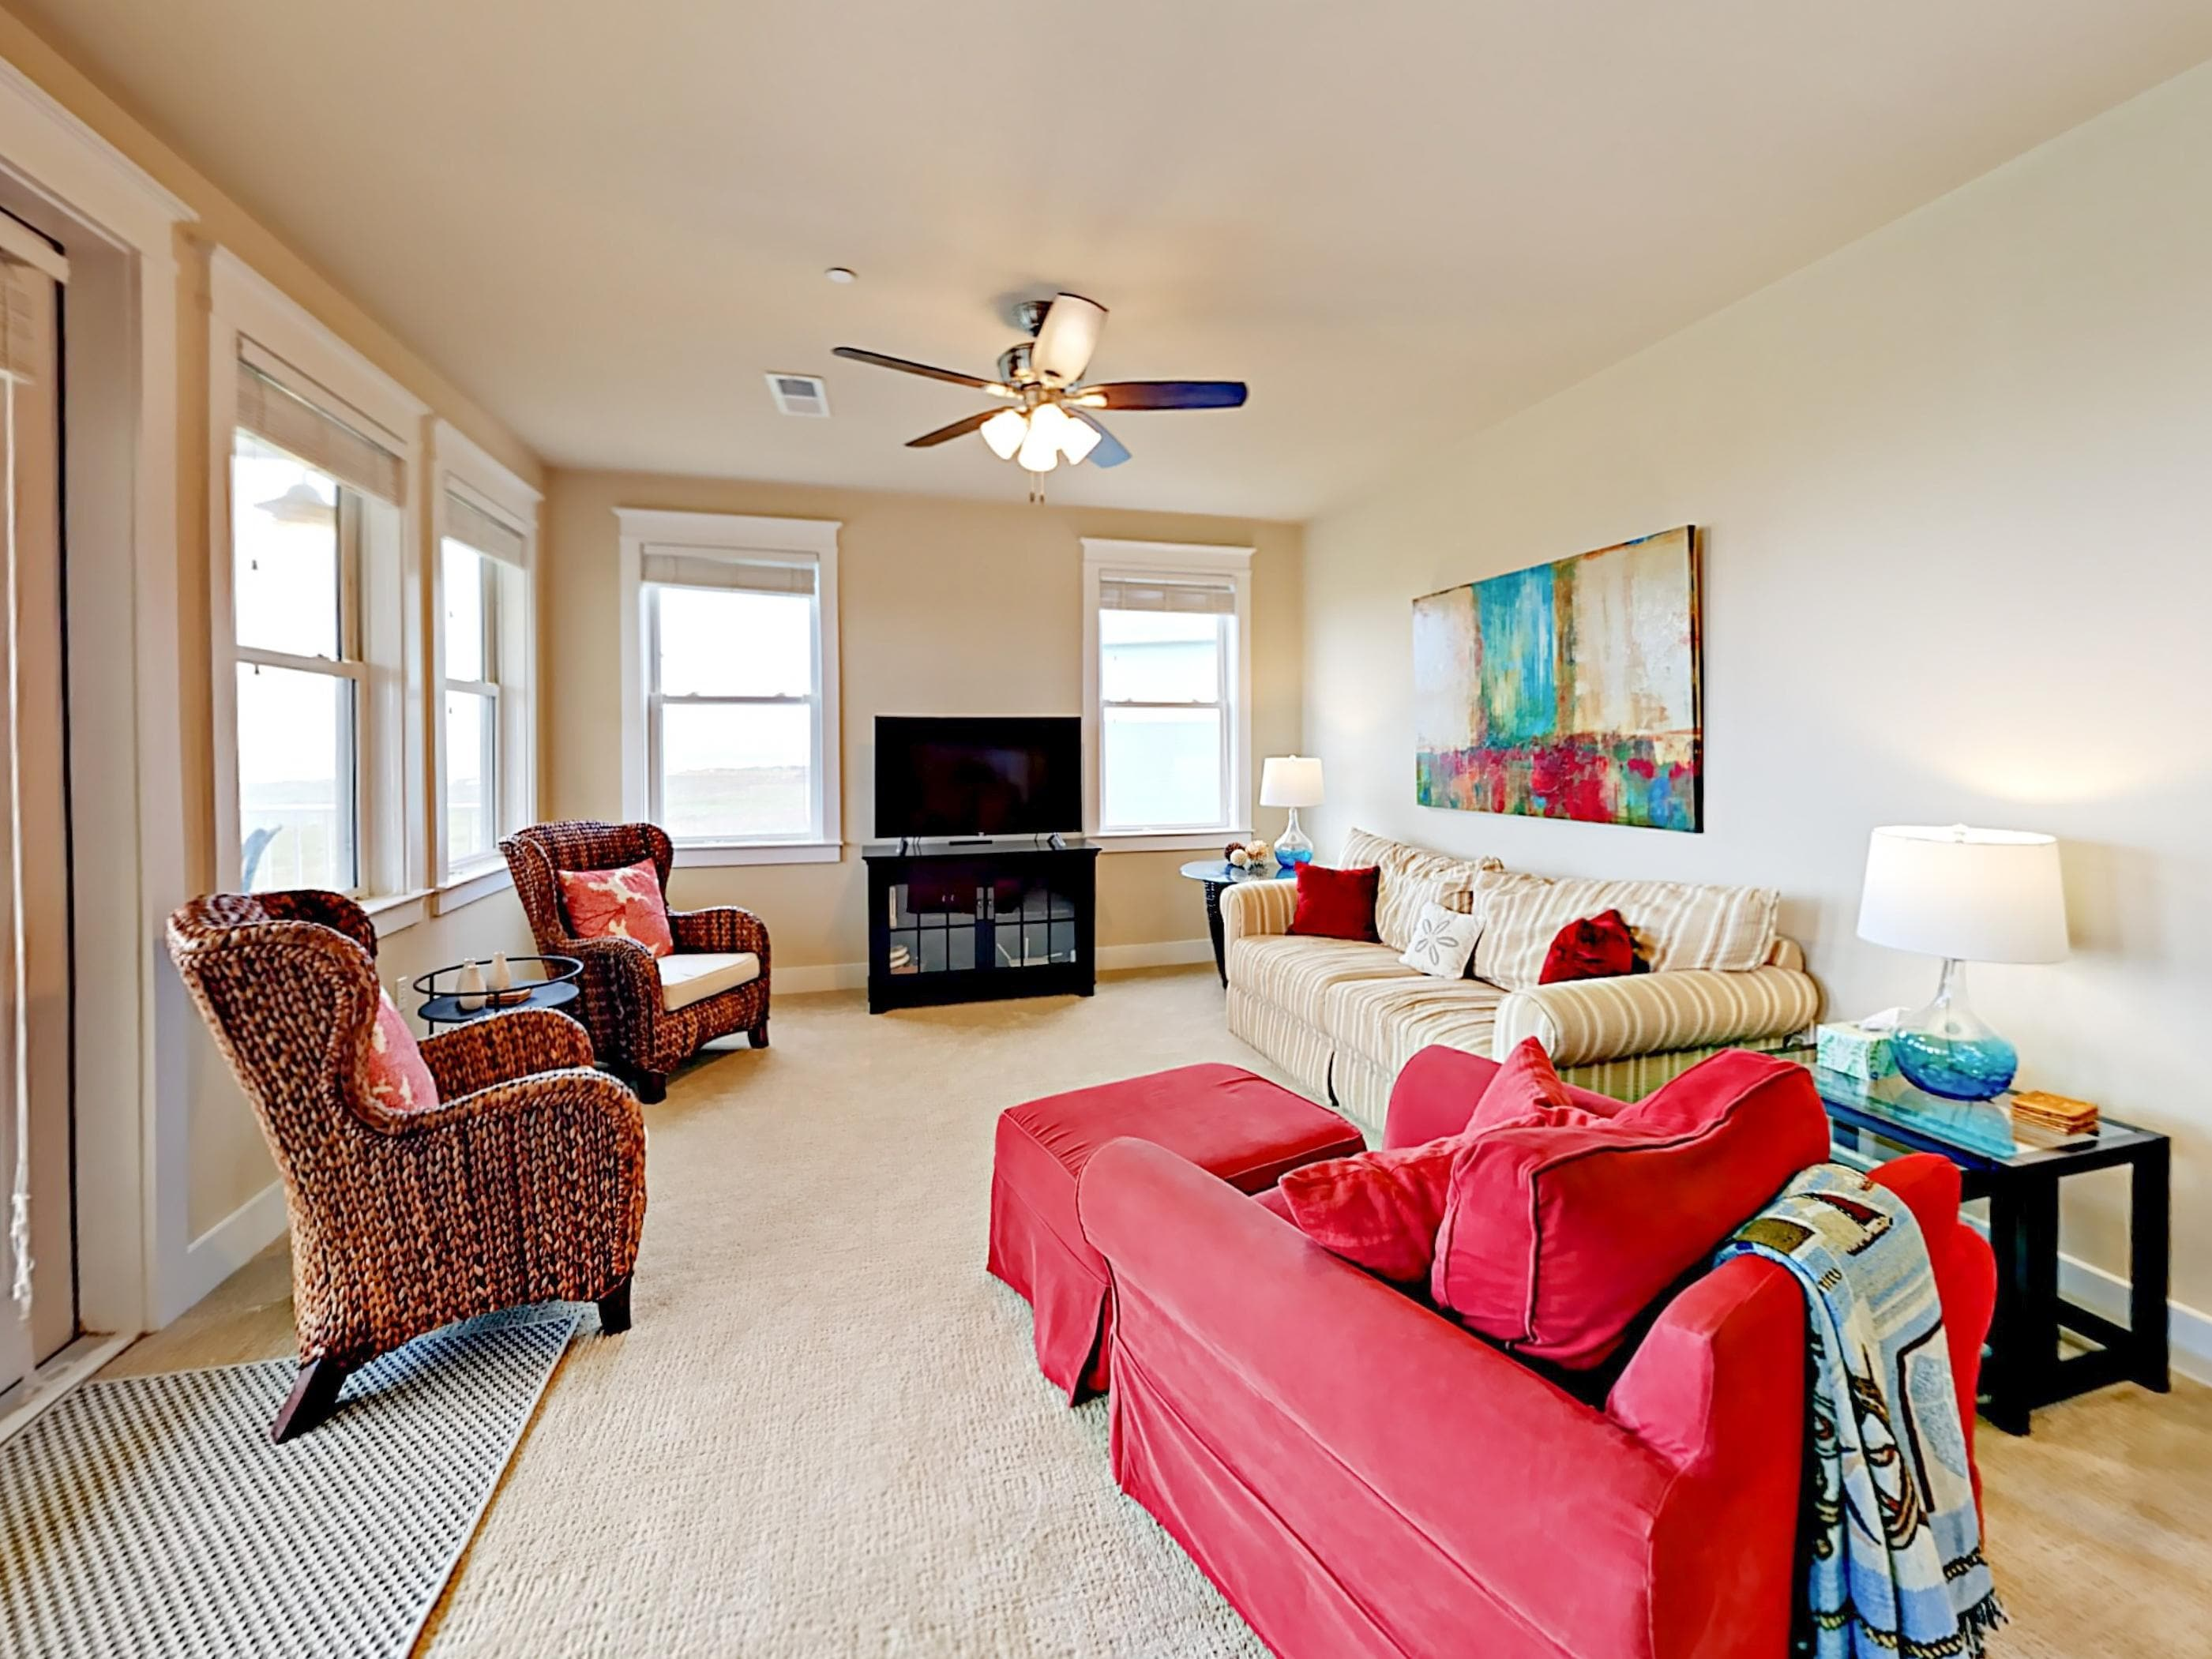 Welcome to Galveston! Your Gulf-front condo is professionally managed by TurnKey Vacation Rentals.